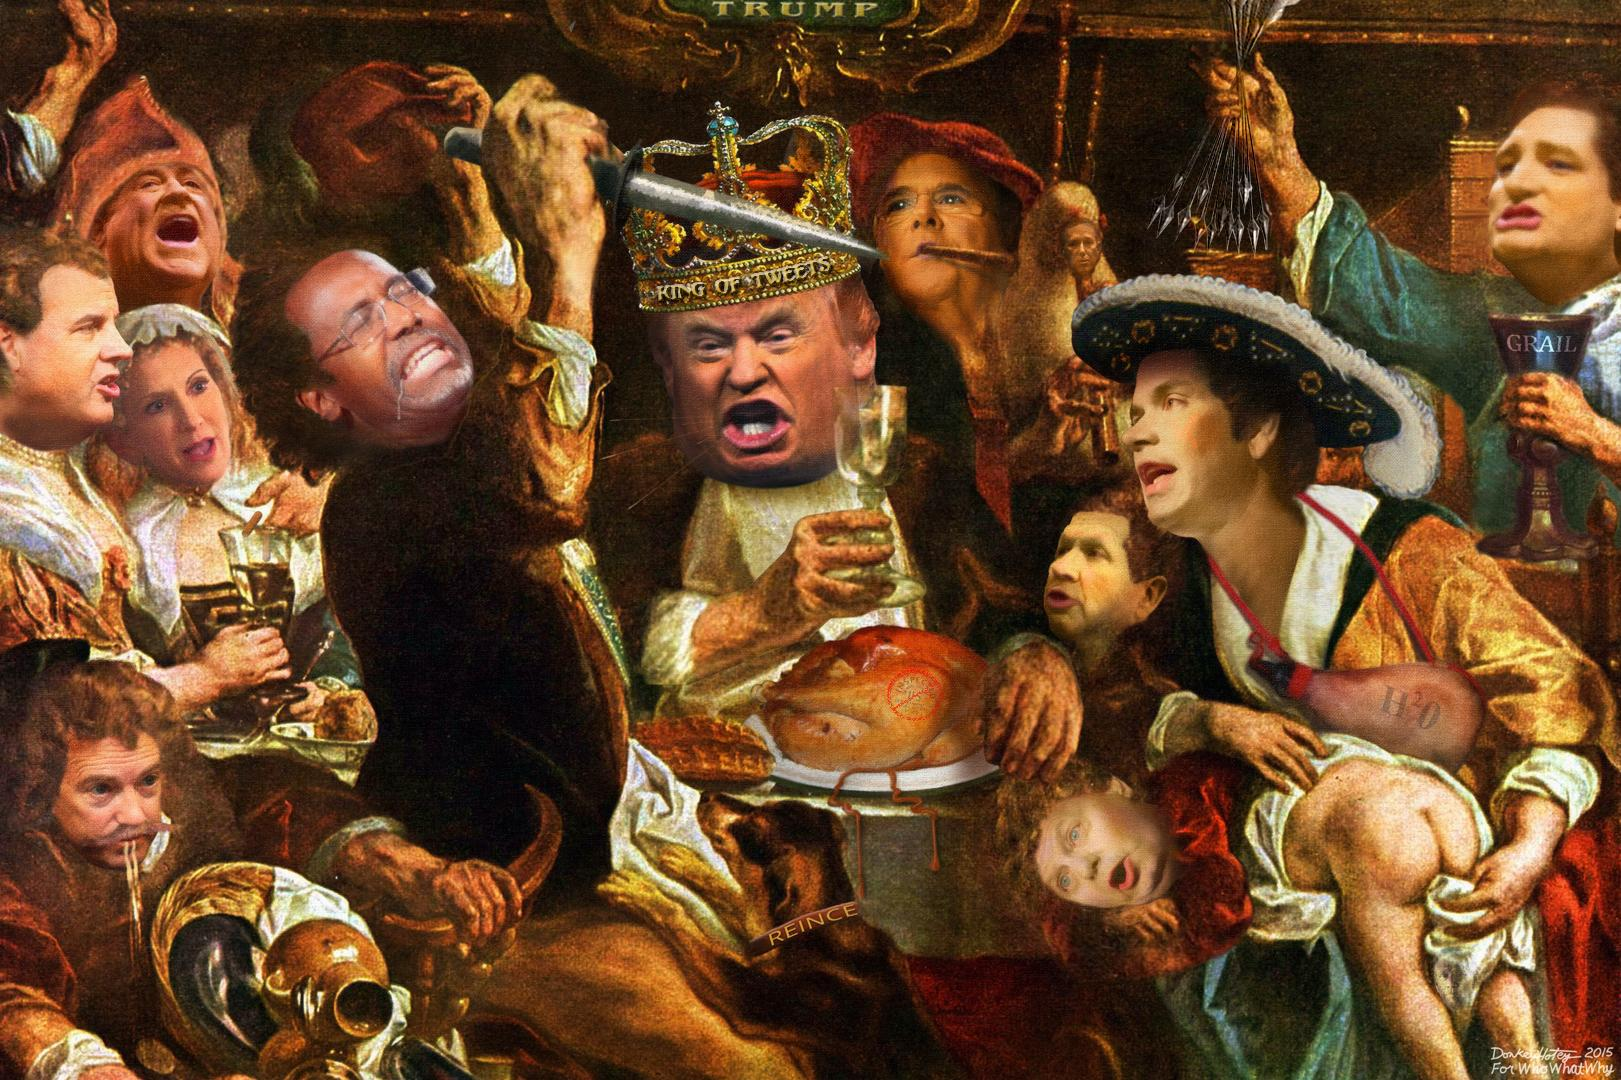 """Thanksgiving Feast at Trump Castle. Photo credit: Adapted for WhoWhatWhy by DonkeyHotey from a 17th century painting by Jacob Jordaens titled """"The King Drinks"""" available via Wikimedia. Other images used in this adaptation are listed below."""